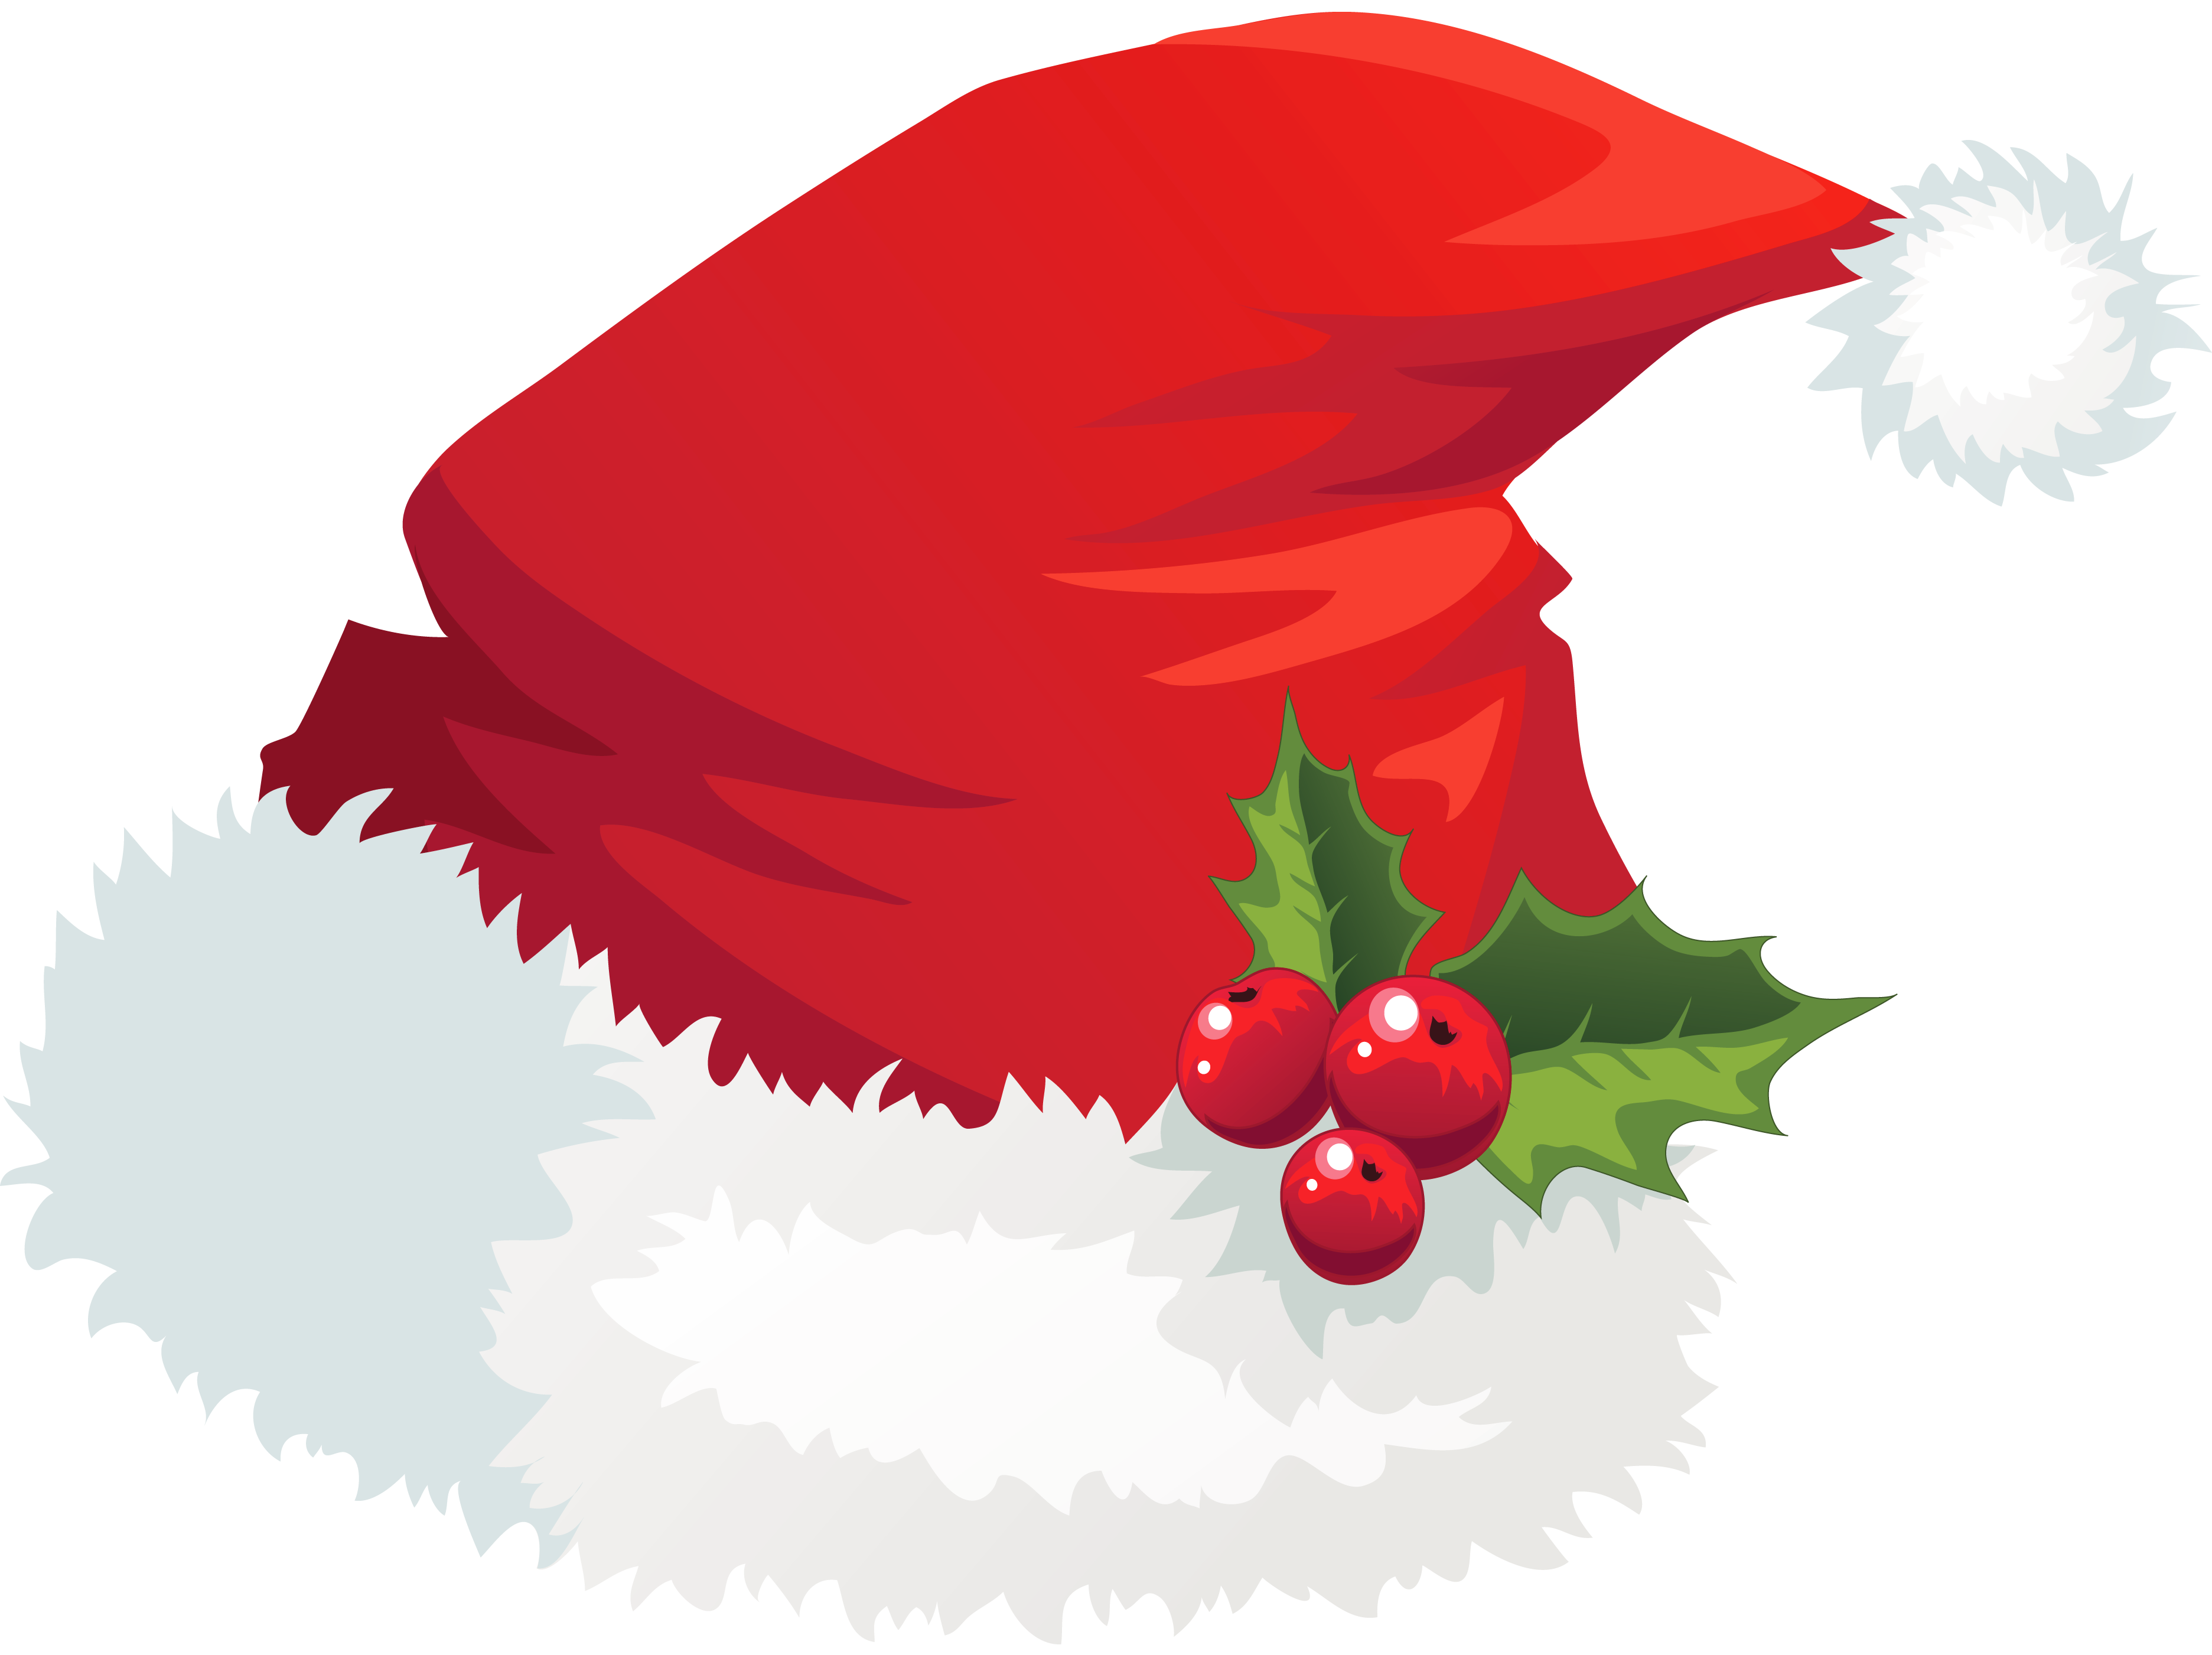 jpg black and white download Mistletoe clipart merry christmas. Transparent santa hat with.